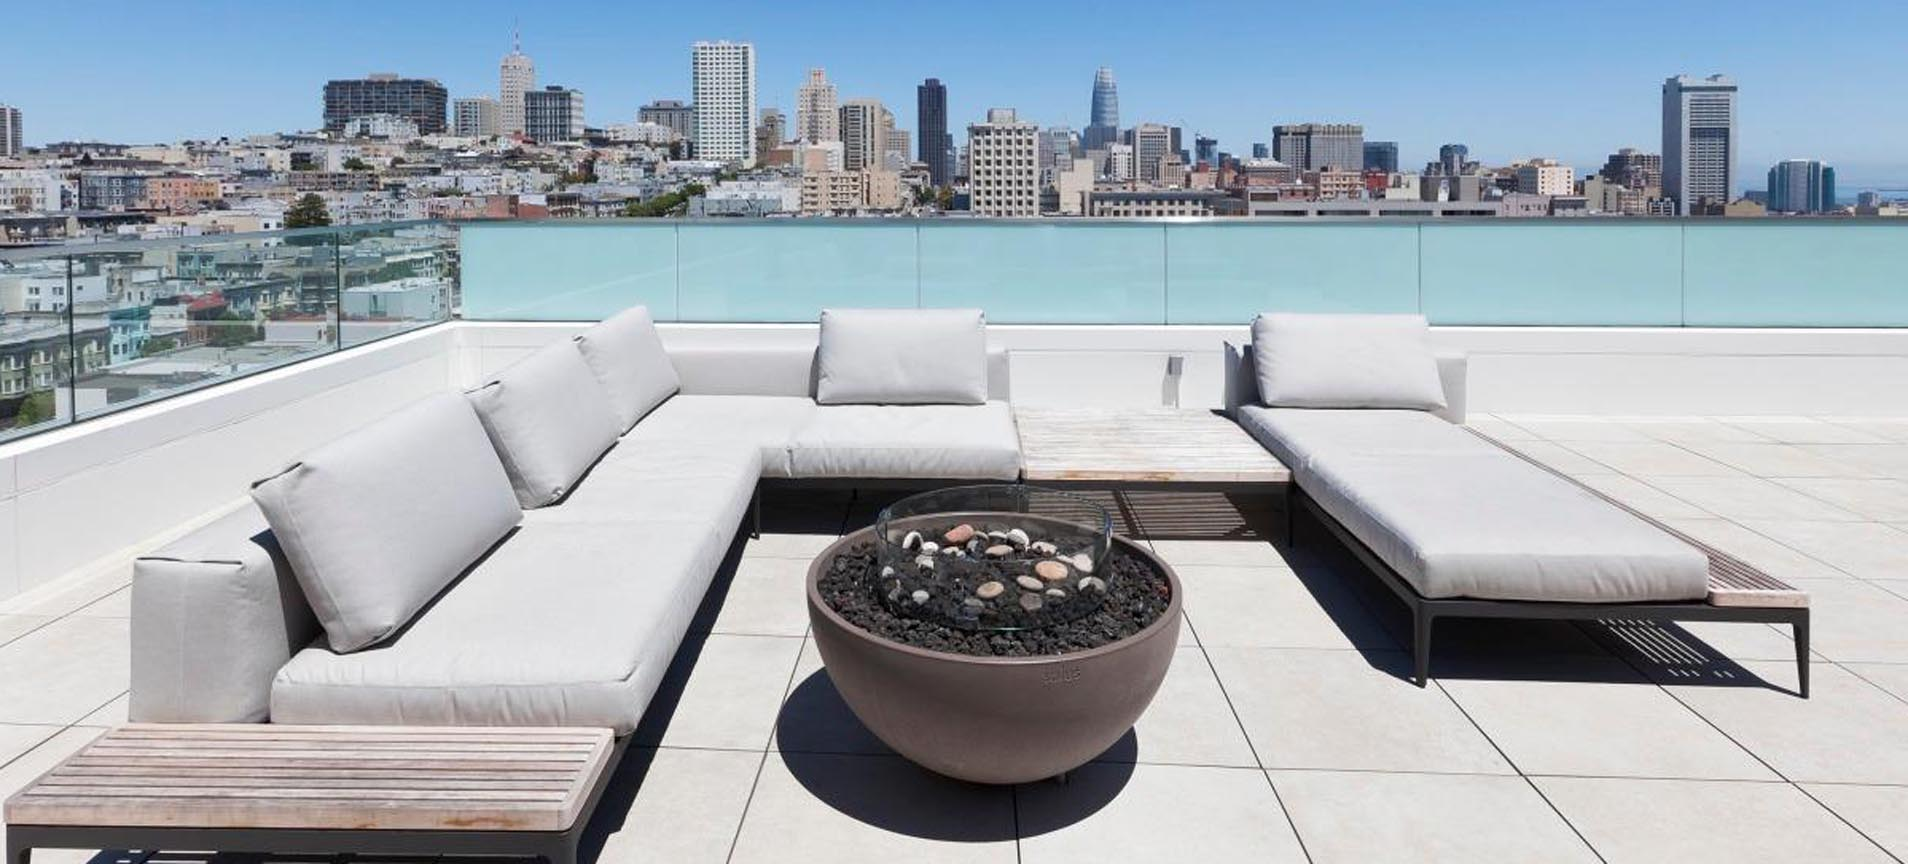 Why You Should Consider Travertine Porcelain Pavers for Your Pool Deck